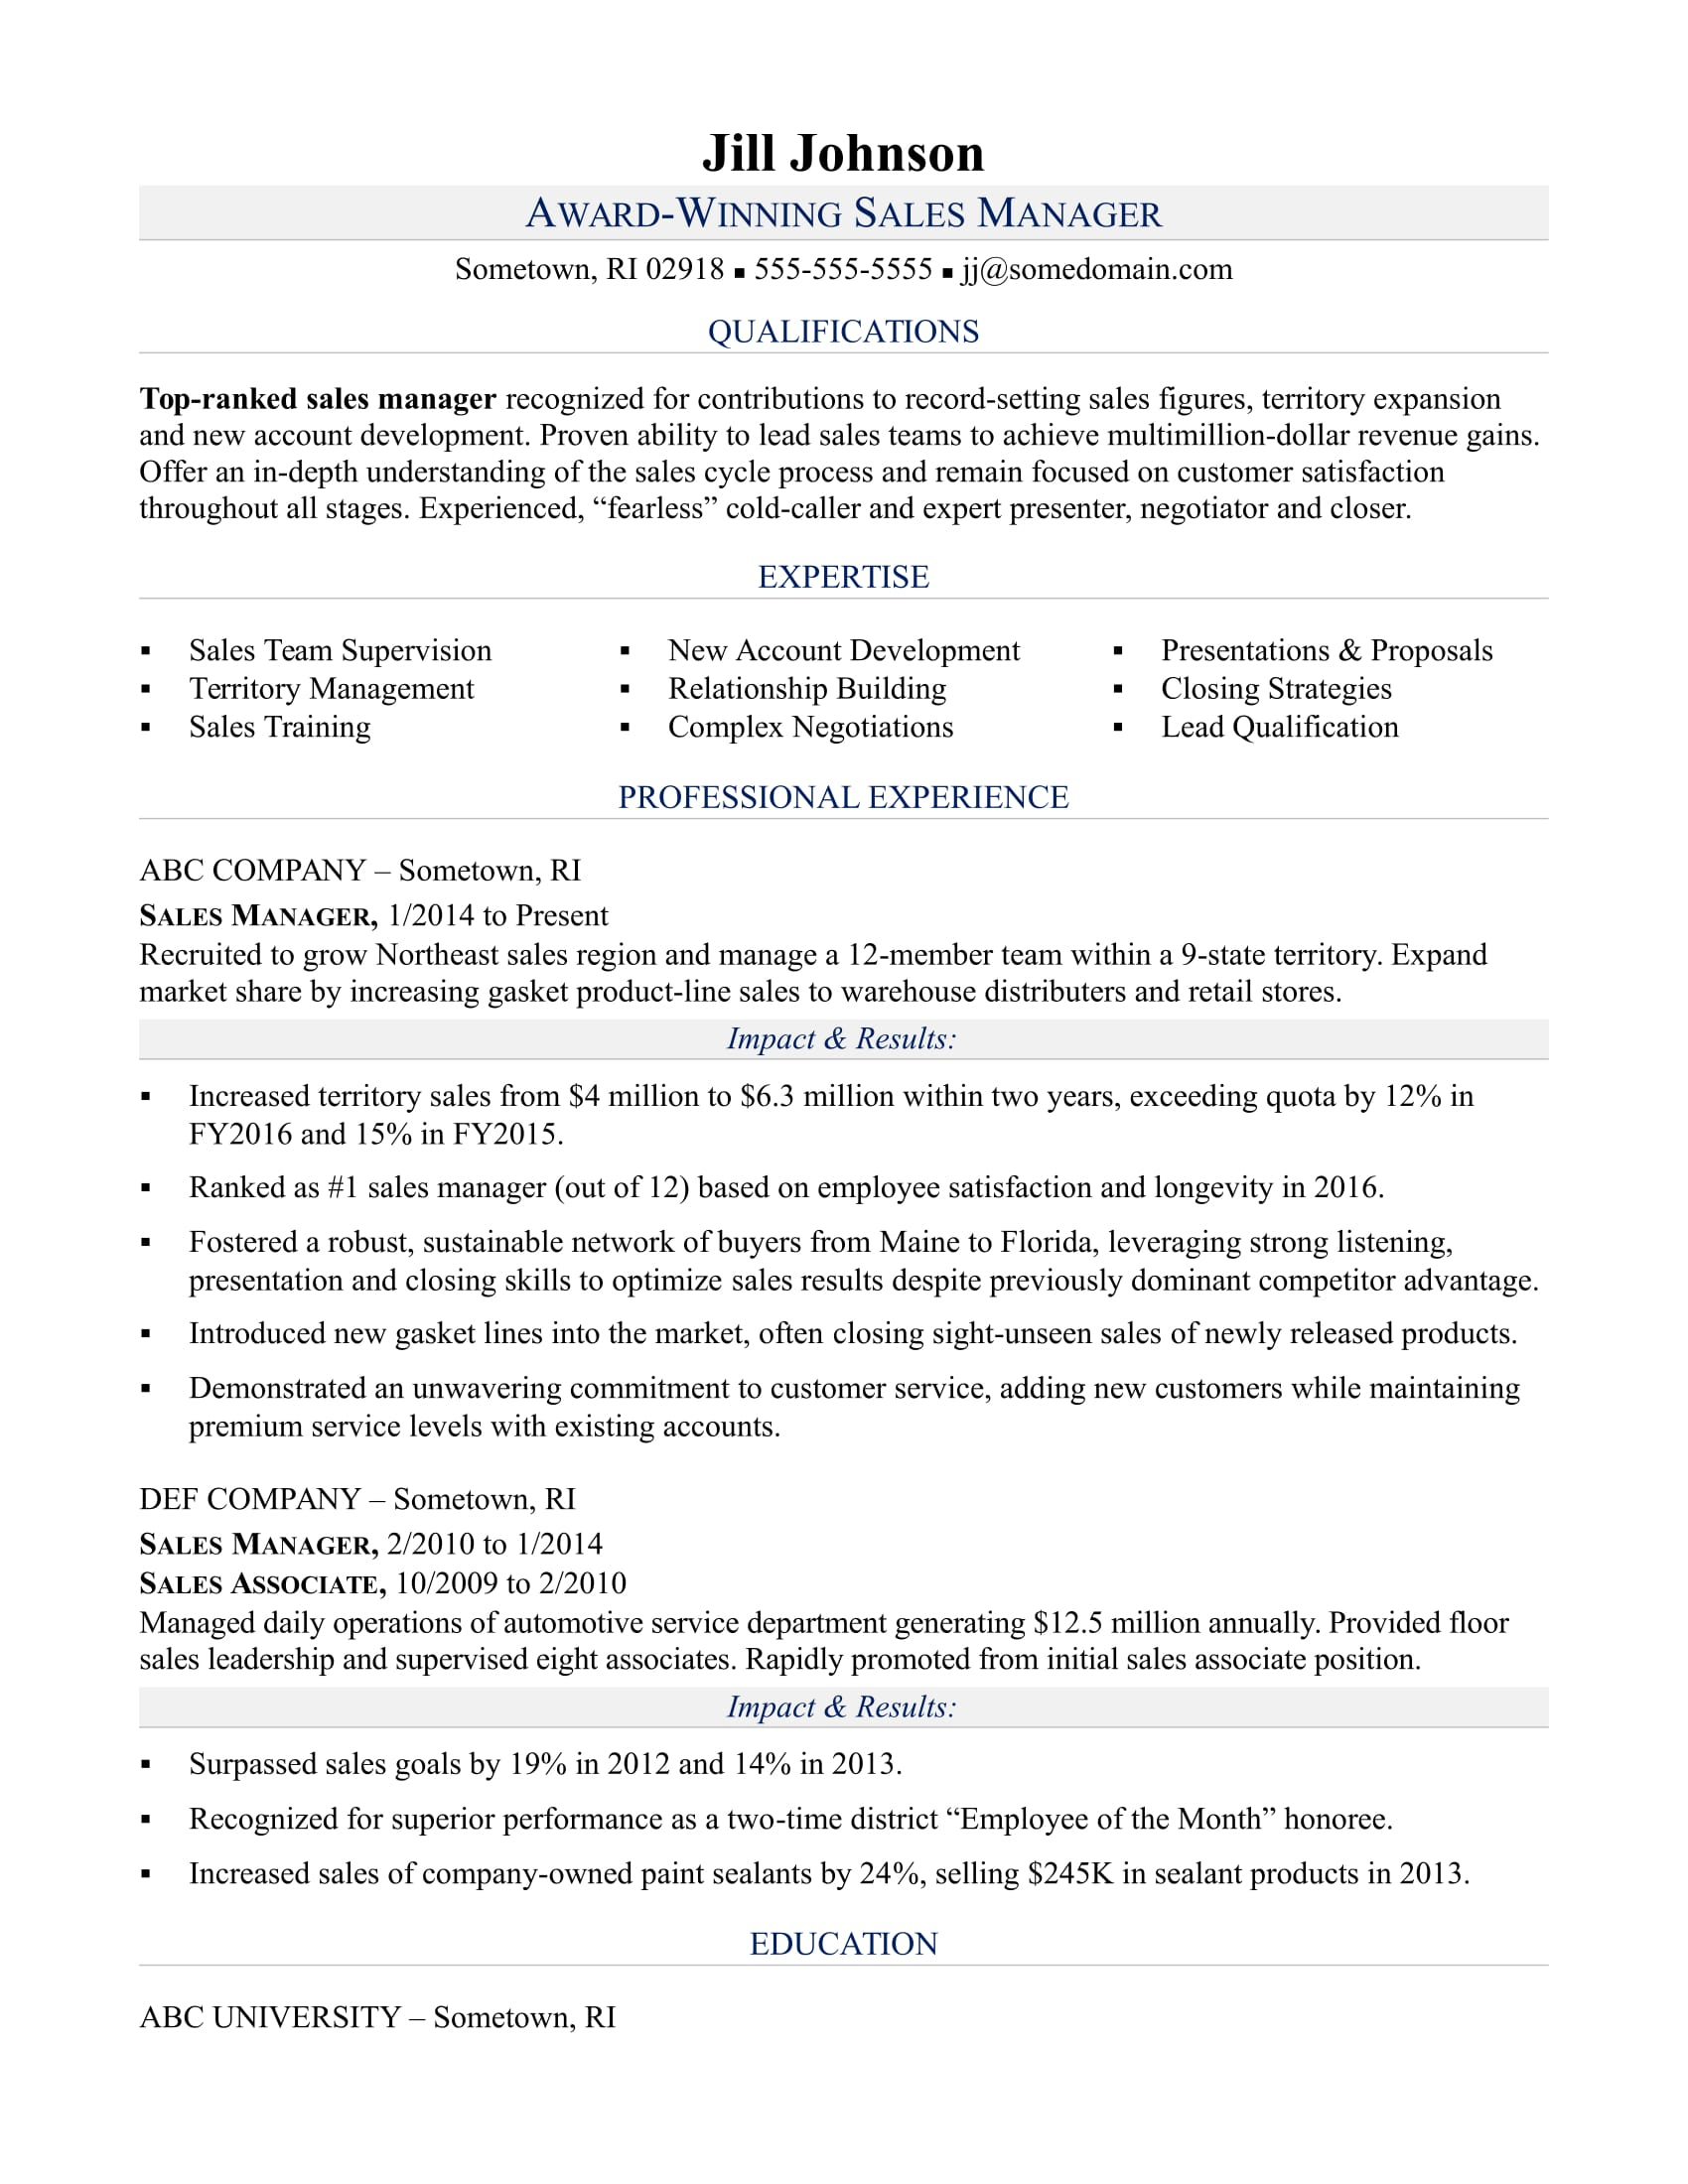 Charming Sample Resume For A Sales Manager